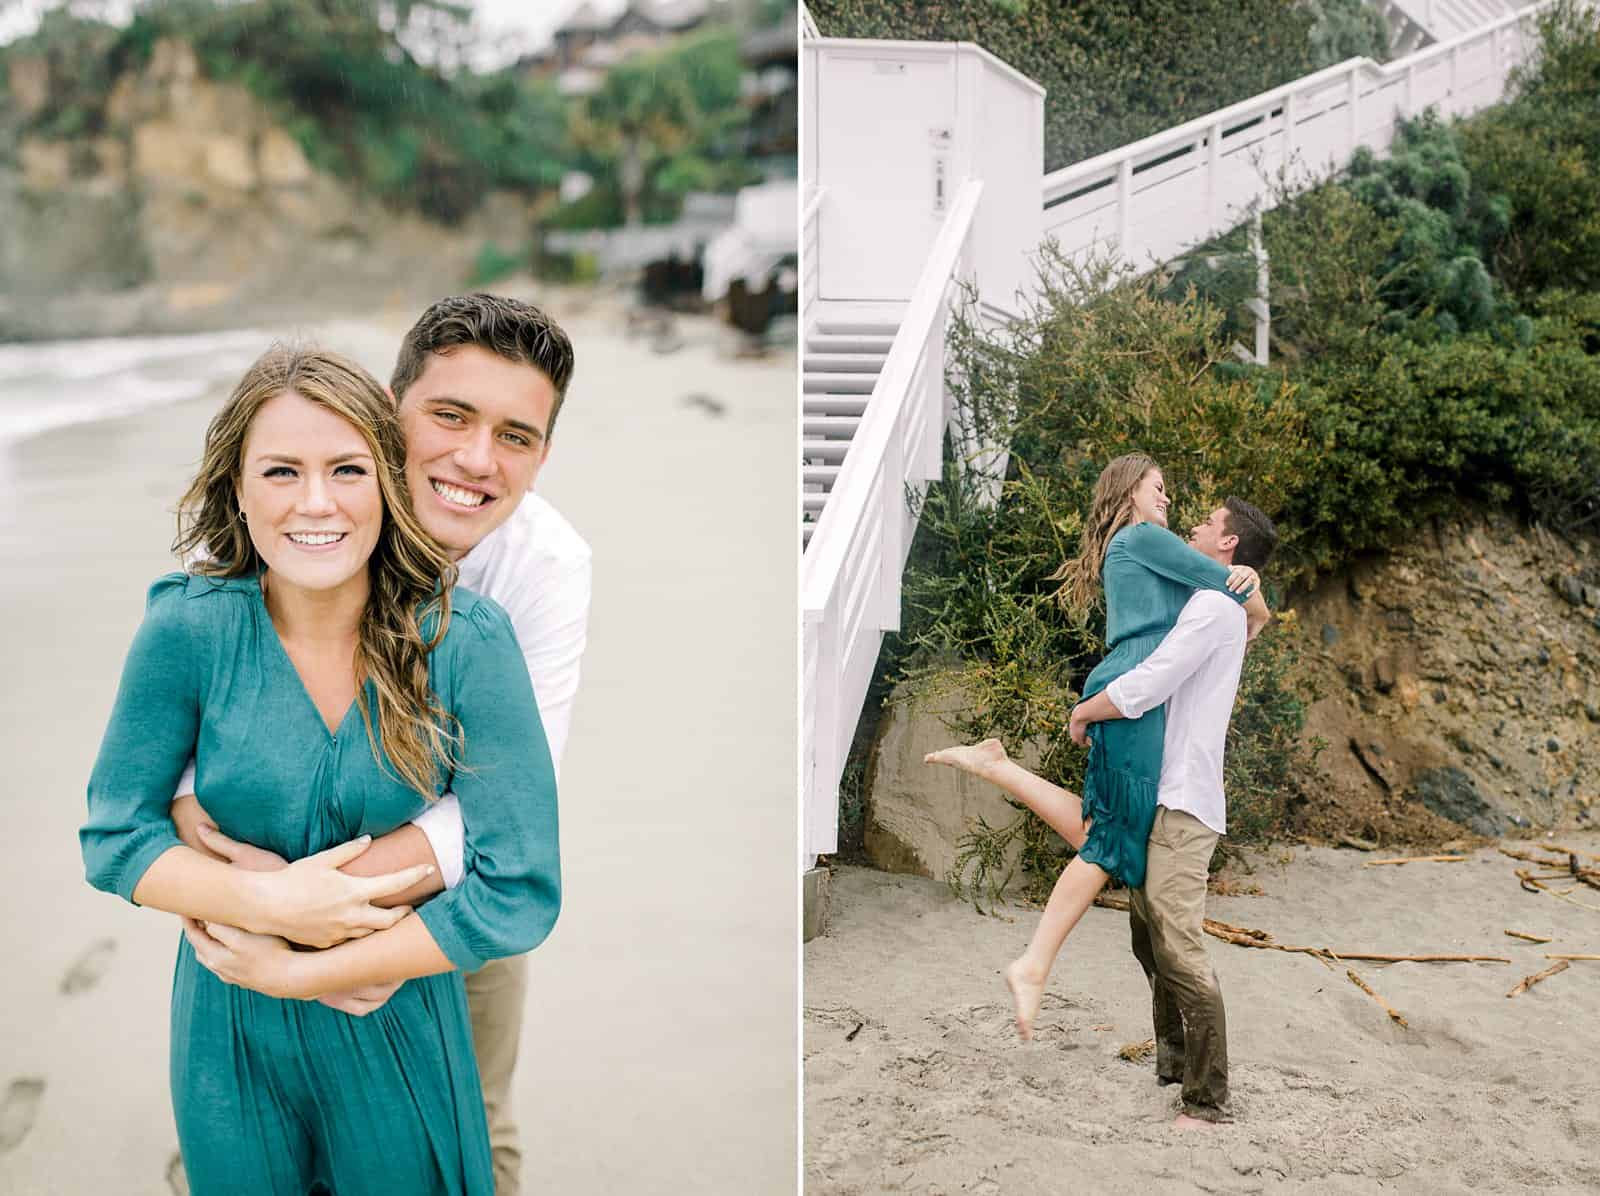 Laguna Beach engagement photos, Victoria Beach Pirate Tower engagement session, beach engagement pictures, destination wedding photographer, travel photographer